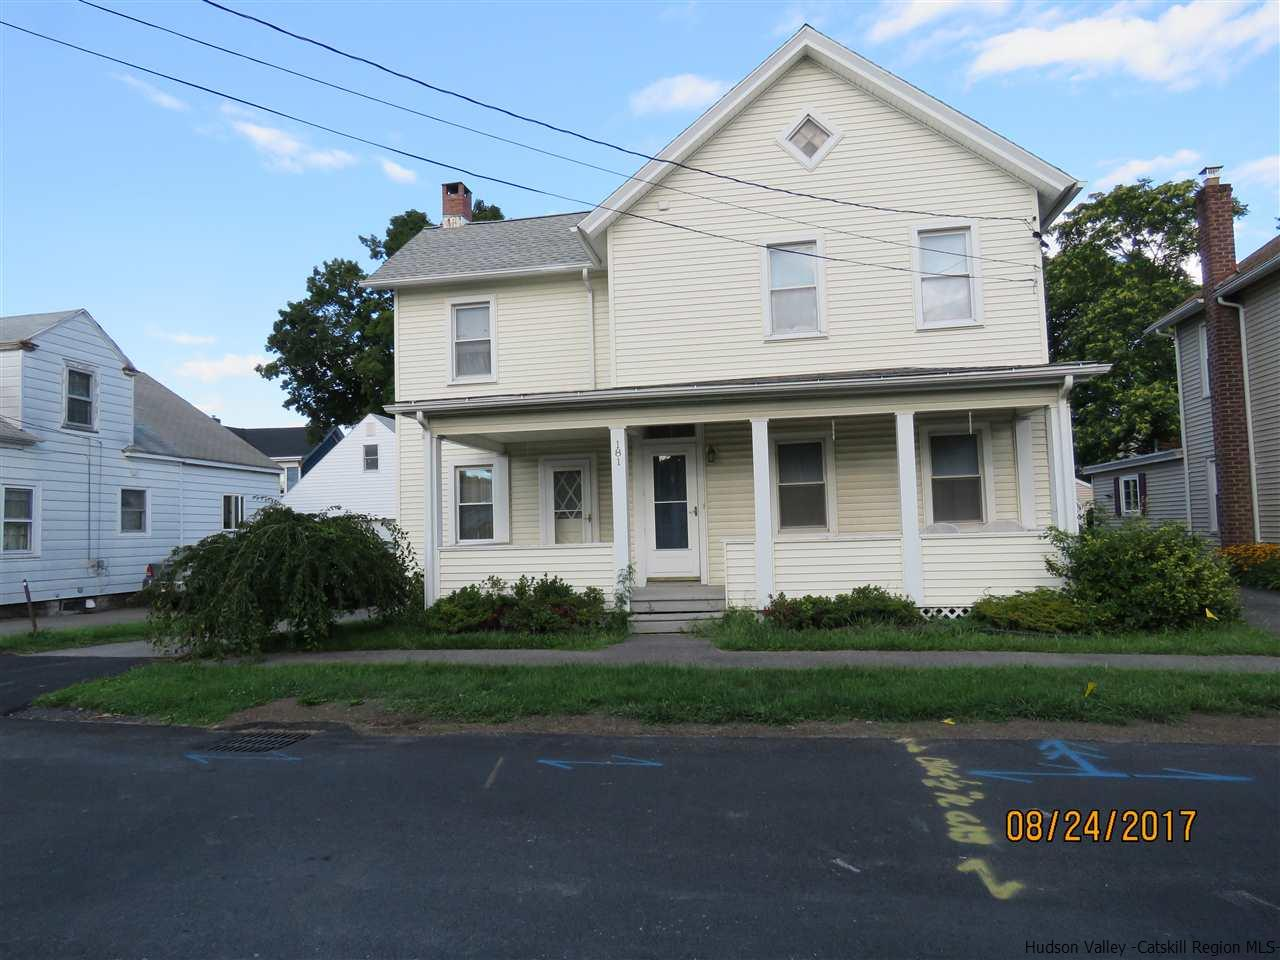 Single Family Home for Sale at 181 Bayard Street 181 Bayard Street Port Ewen, New York 12466 United States